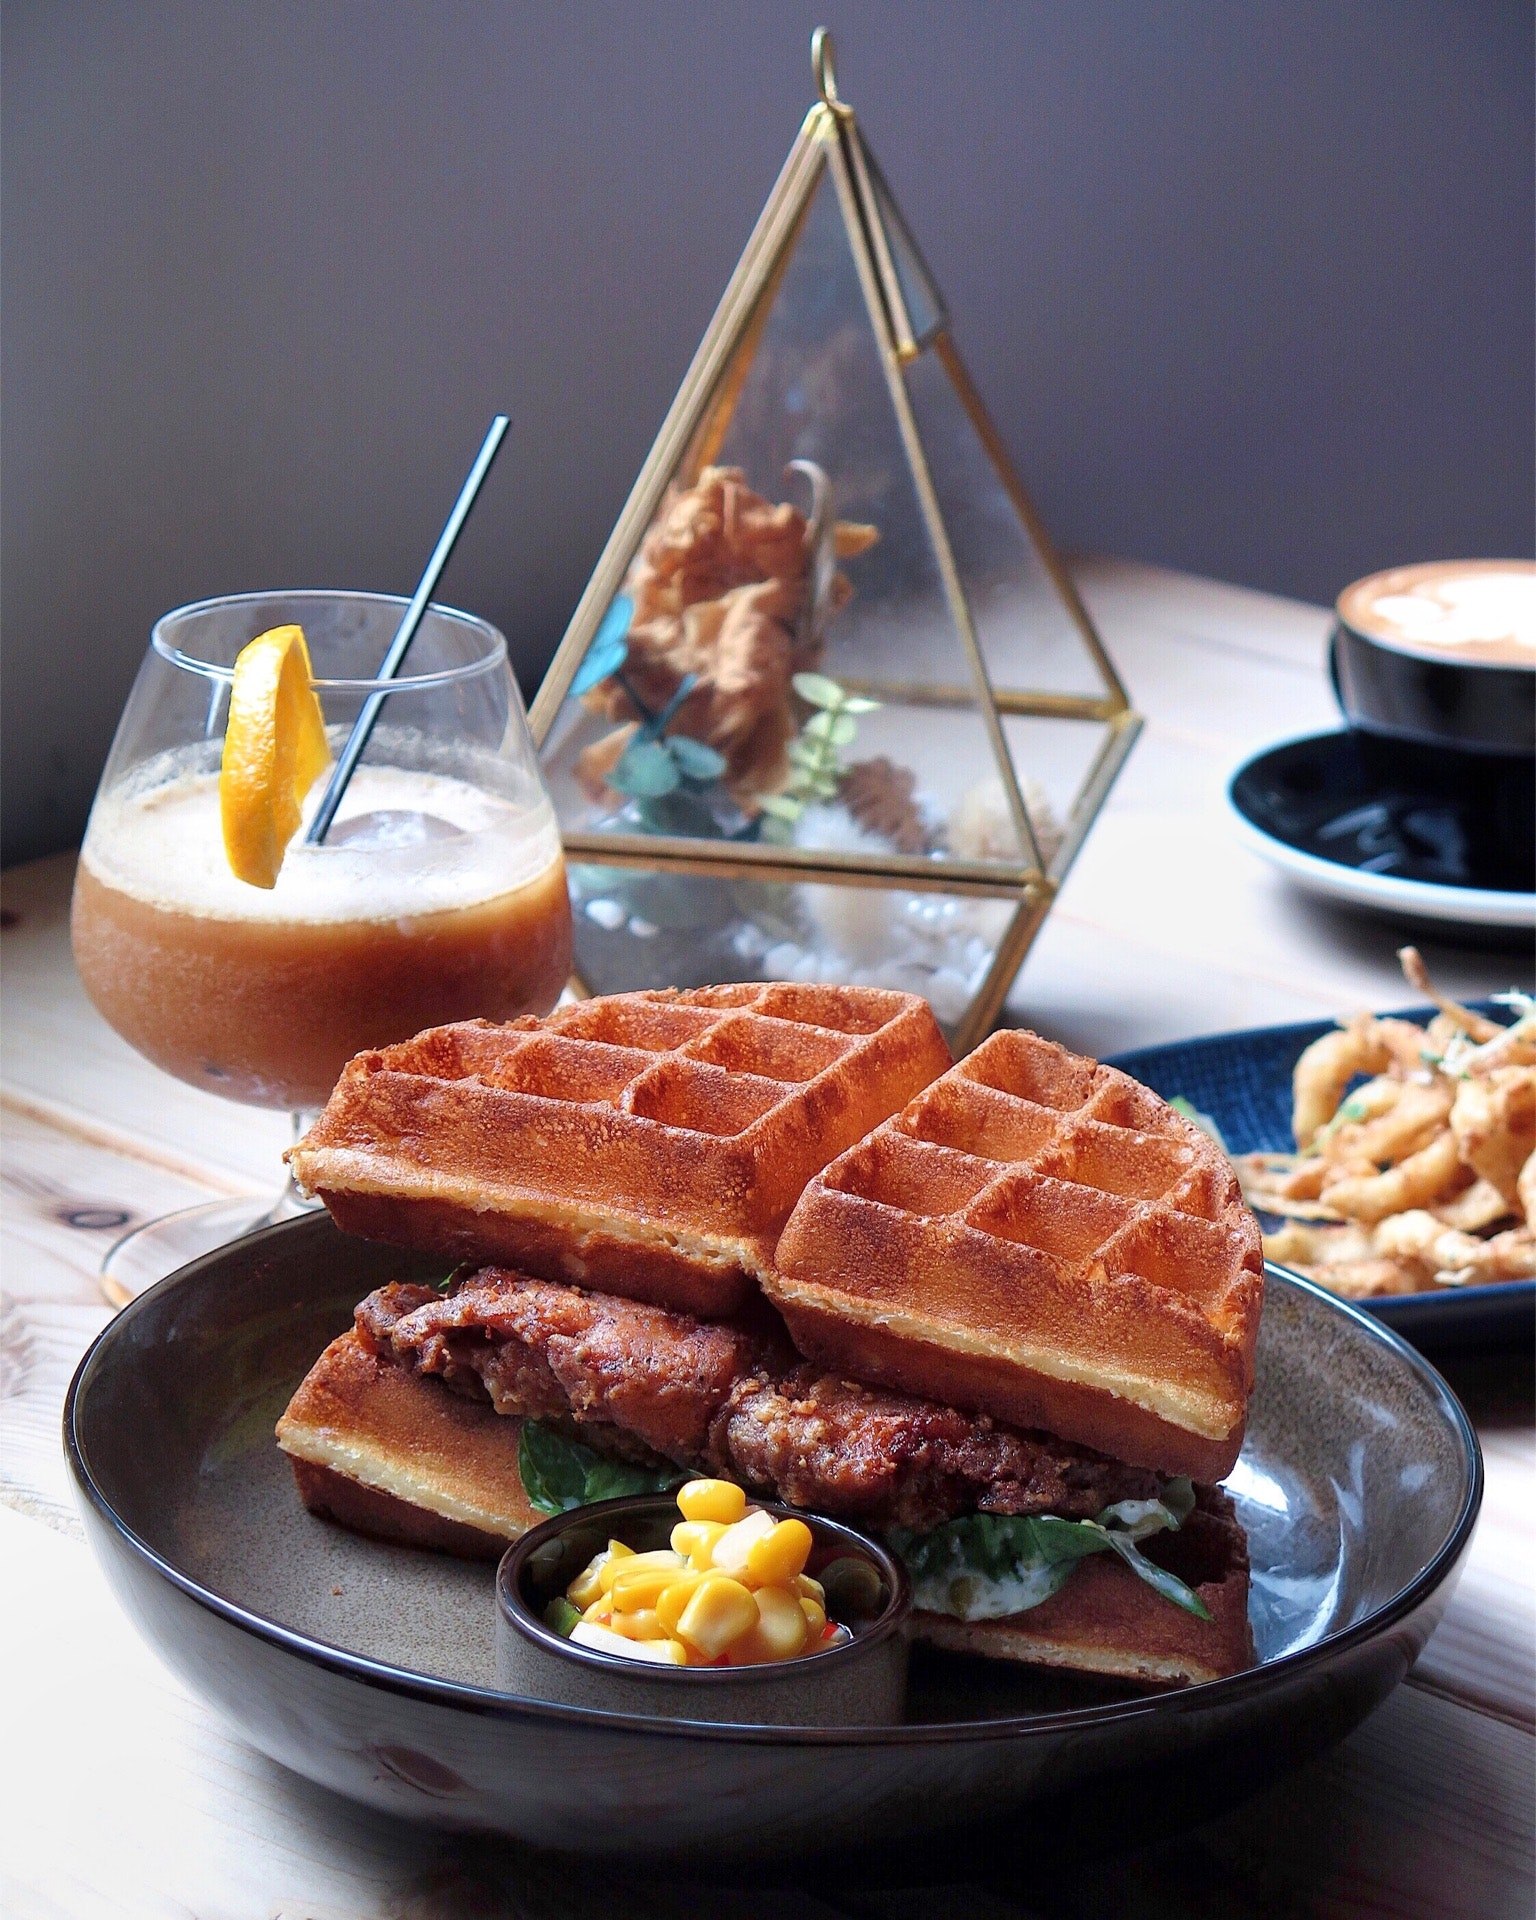 Southern Fried Chicken Waffle [$16]